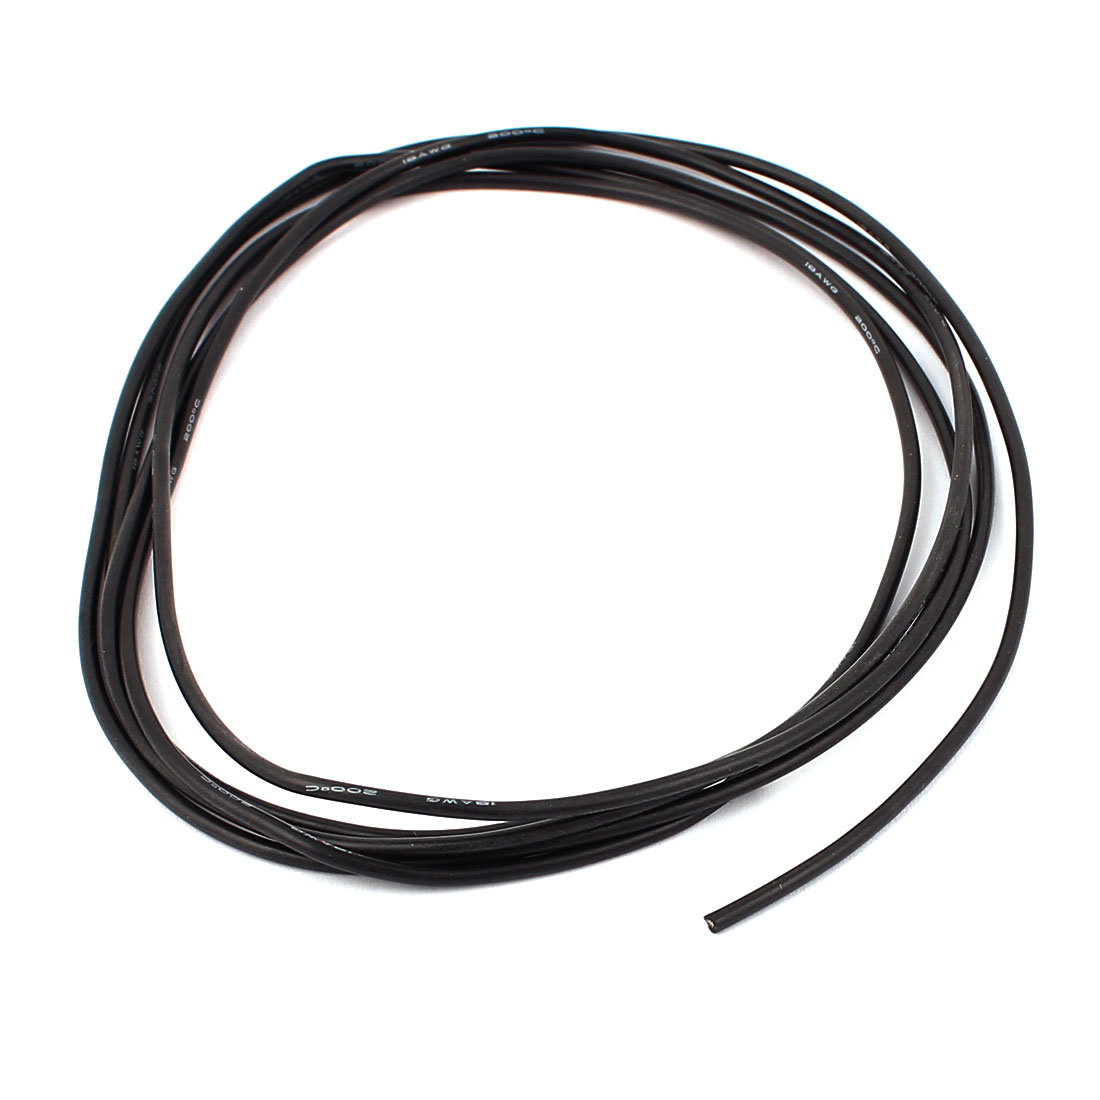 2M 18AWG Electric Copper Core Flexible Silicone Wire Cable Black